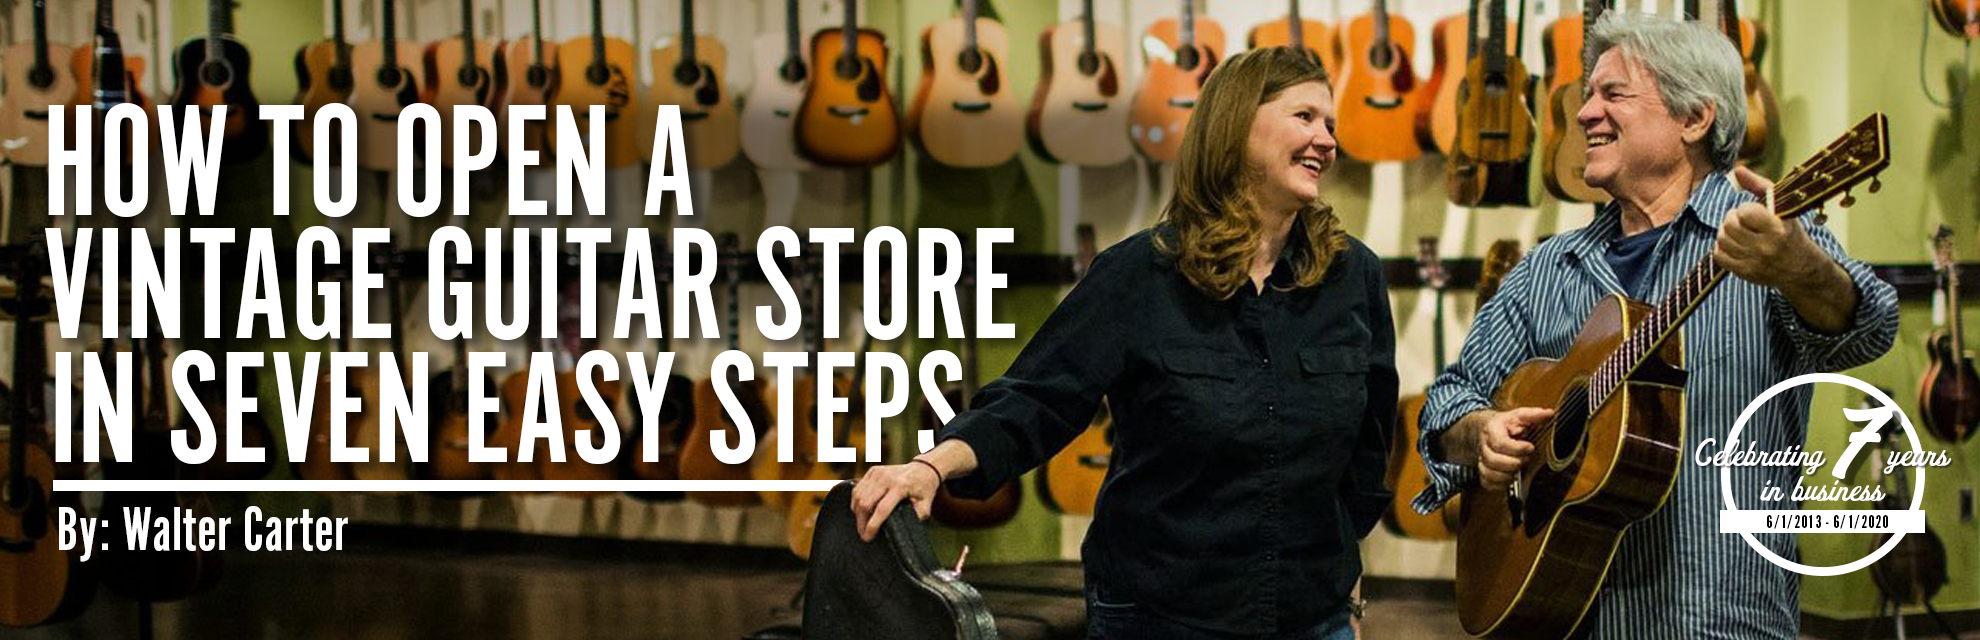 How to Open a Vintage Guitar Store in Seven Easy Steps, by Walter Carter